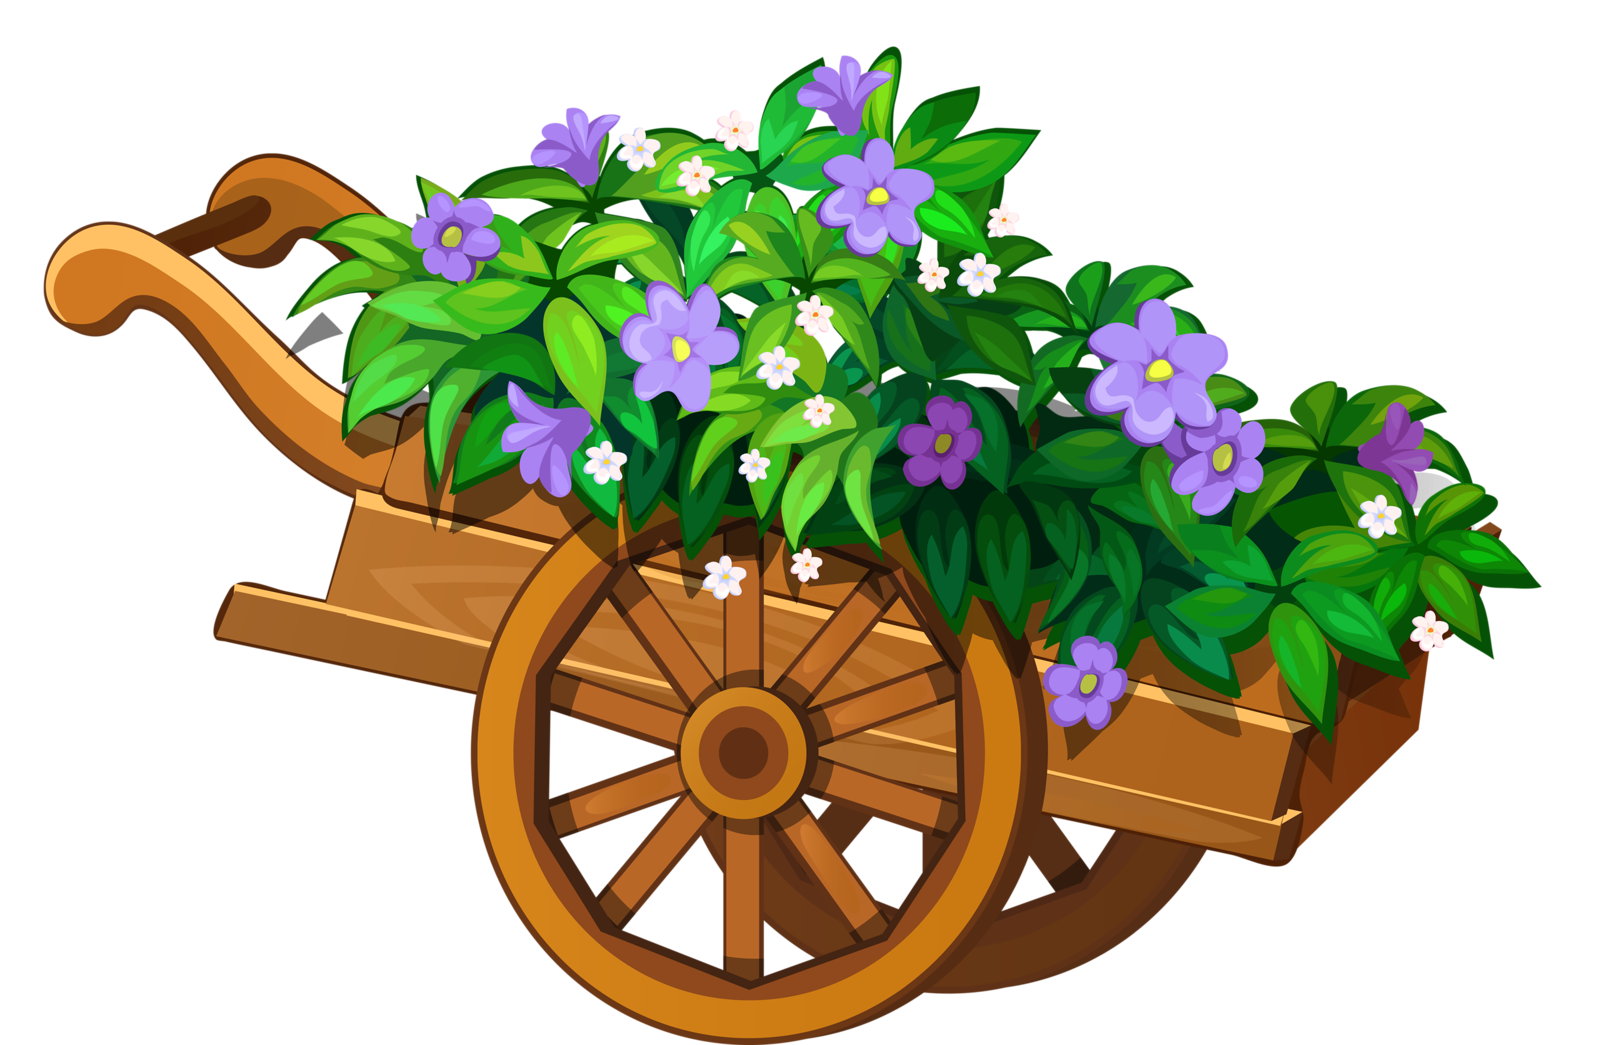 Flower Garden Clipart at GetDrawings | Free download